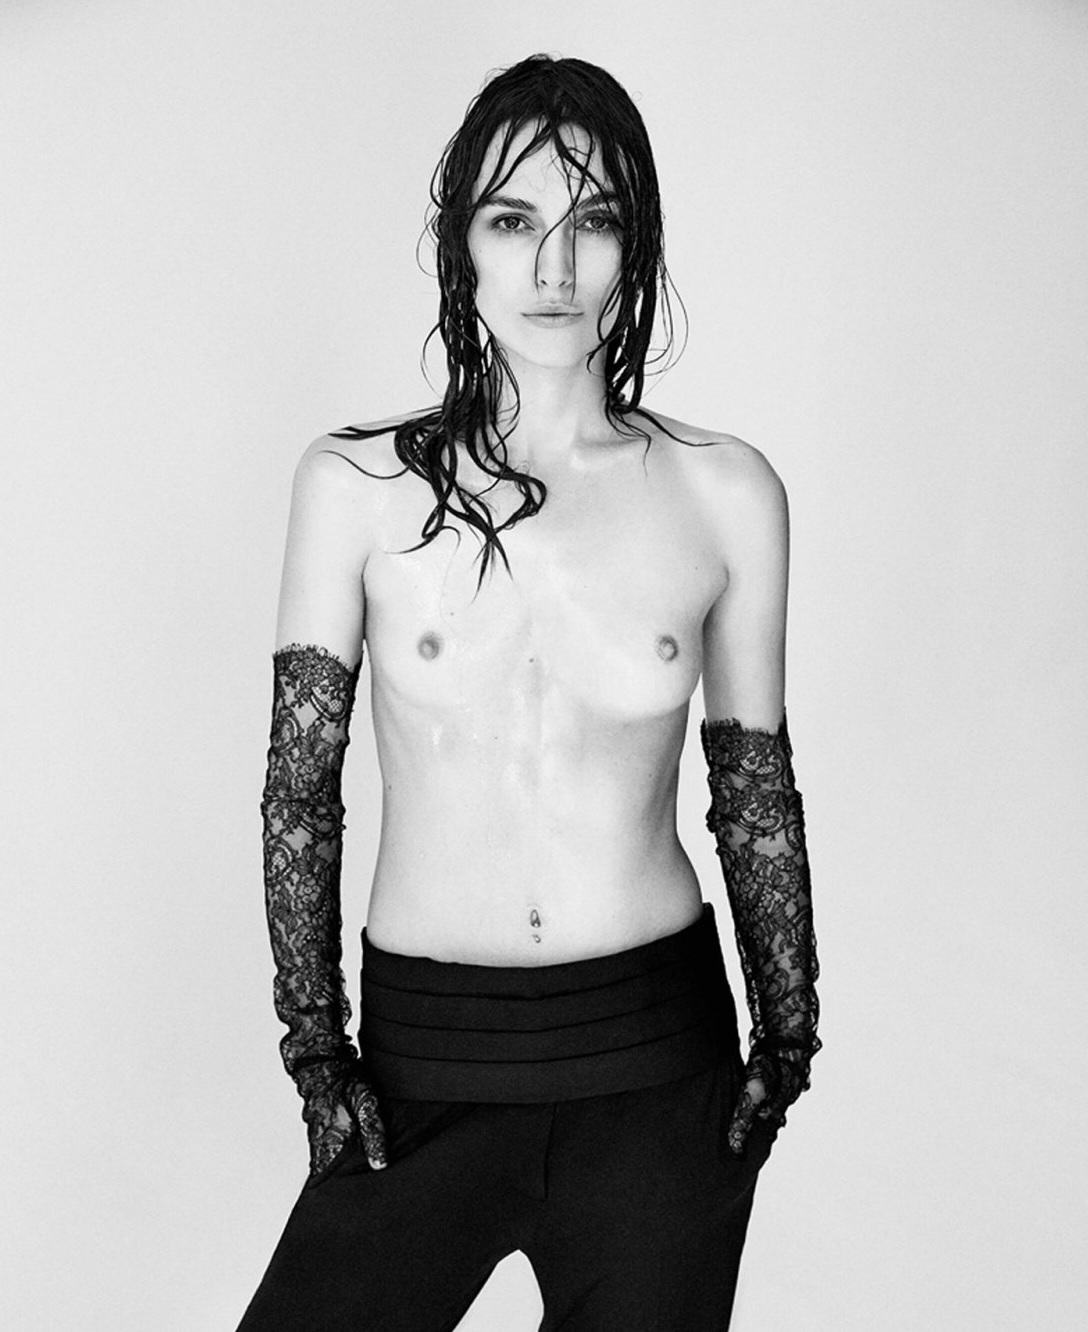 Keira Knightley Strips Naked In Protest Against Photoshopping keira knightley 31